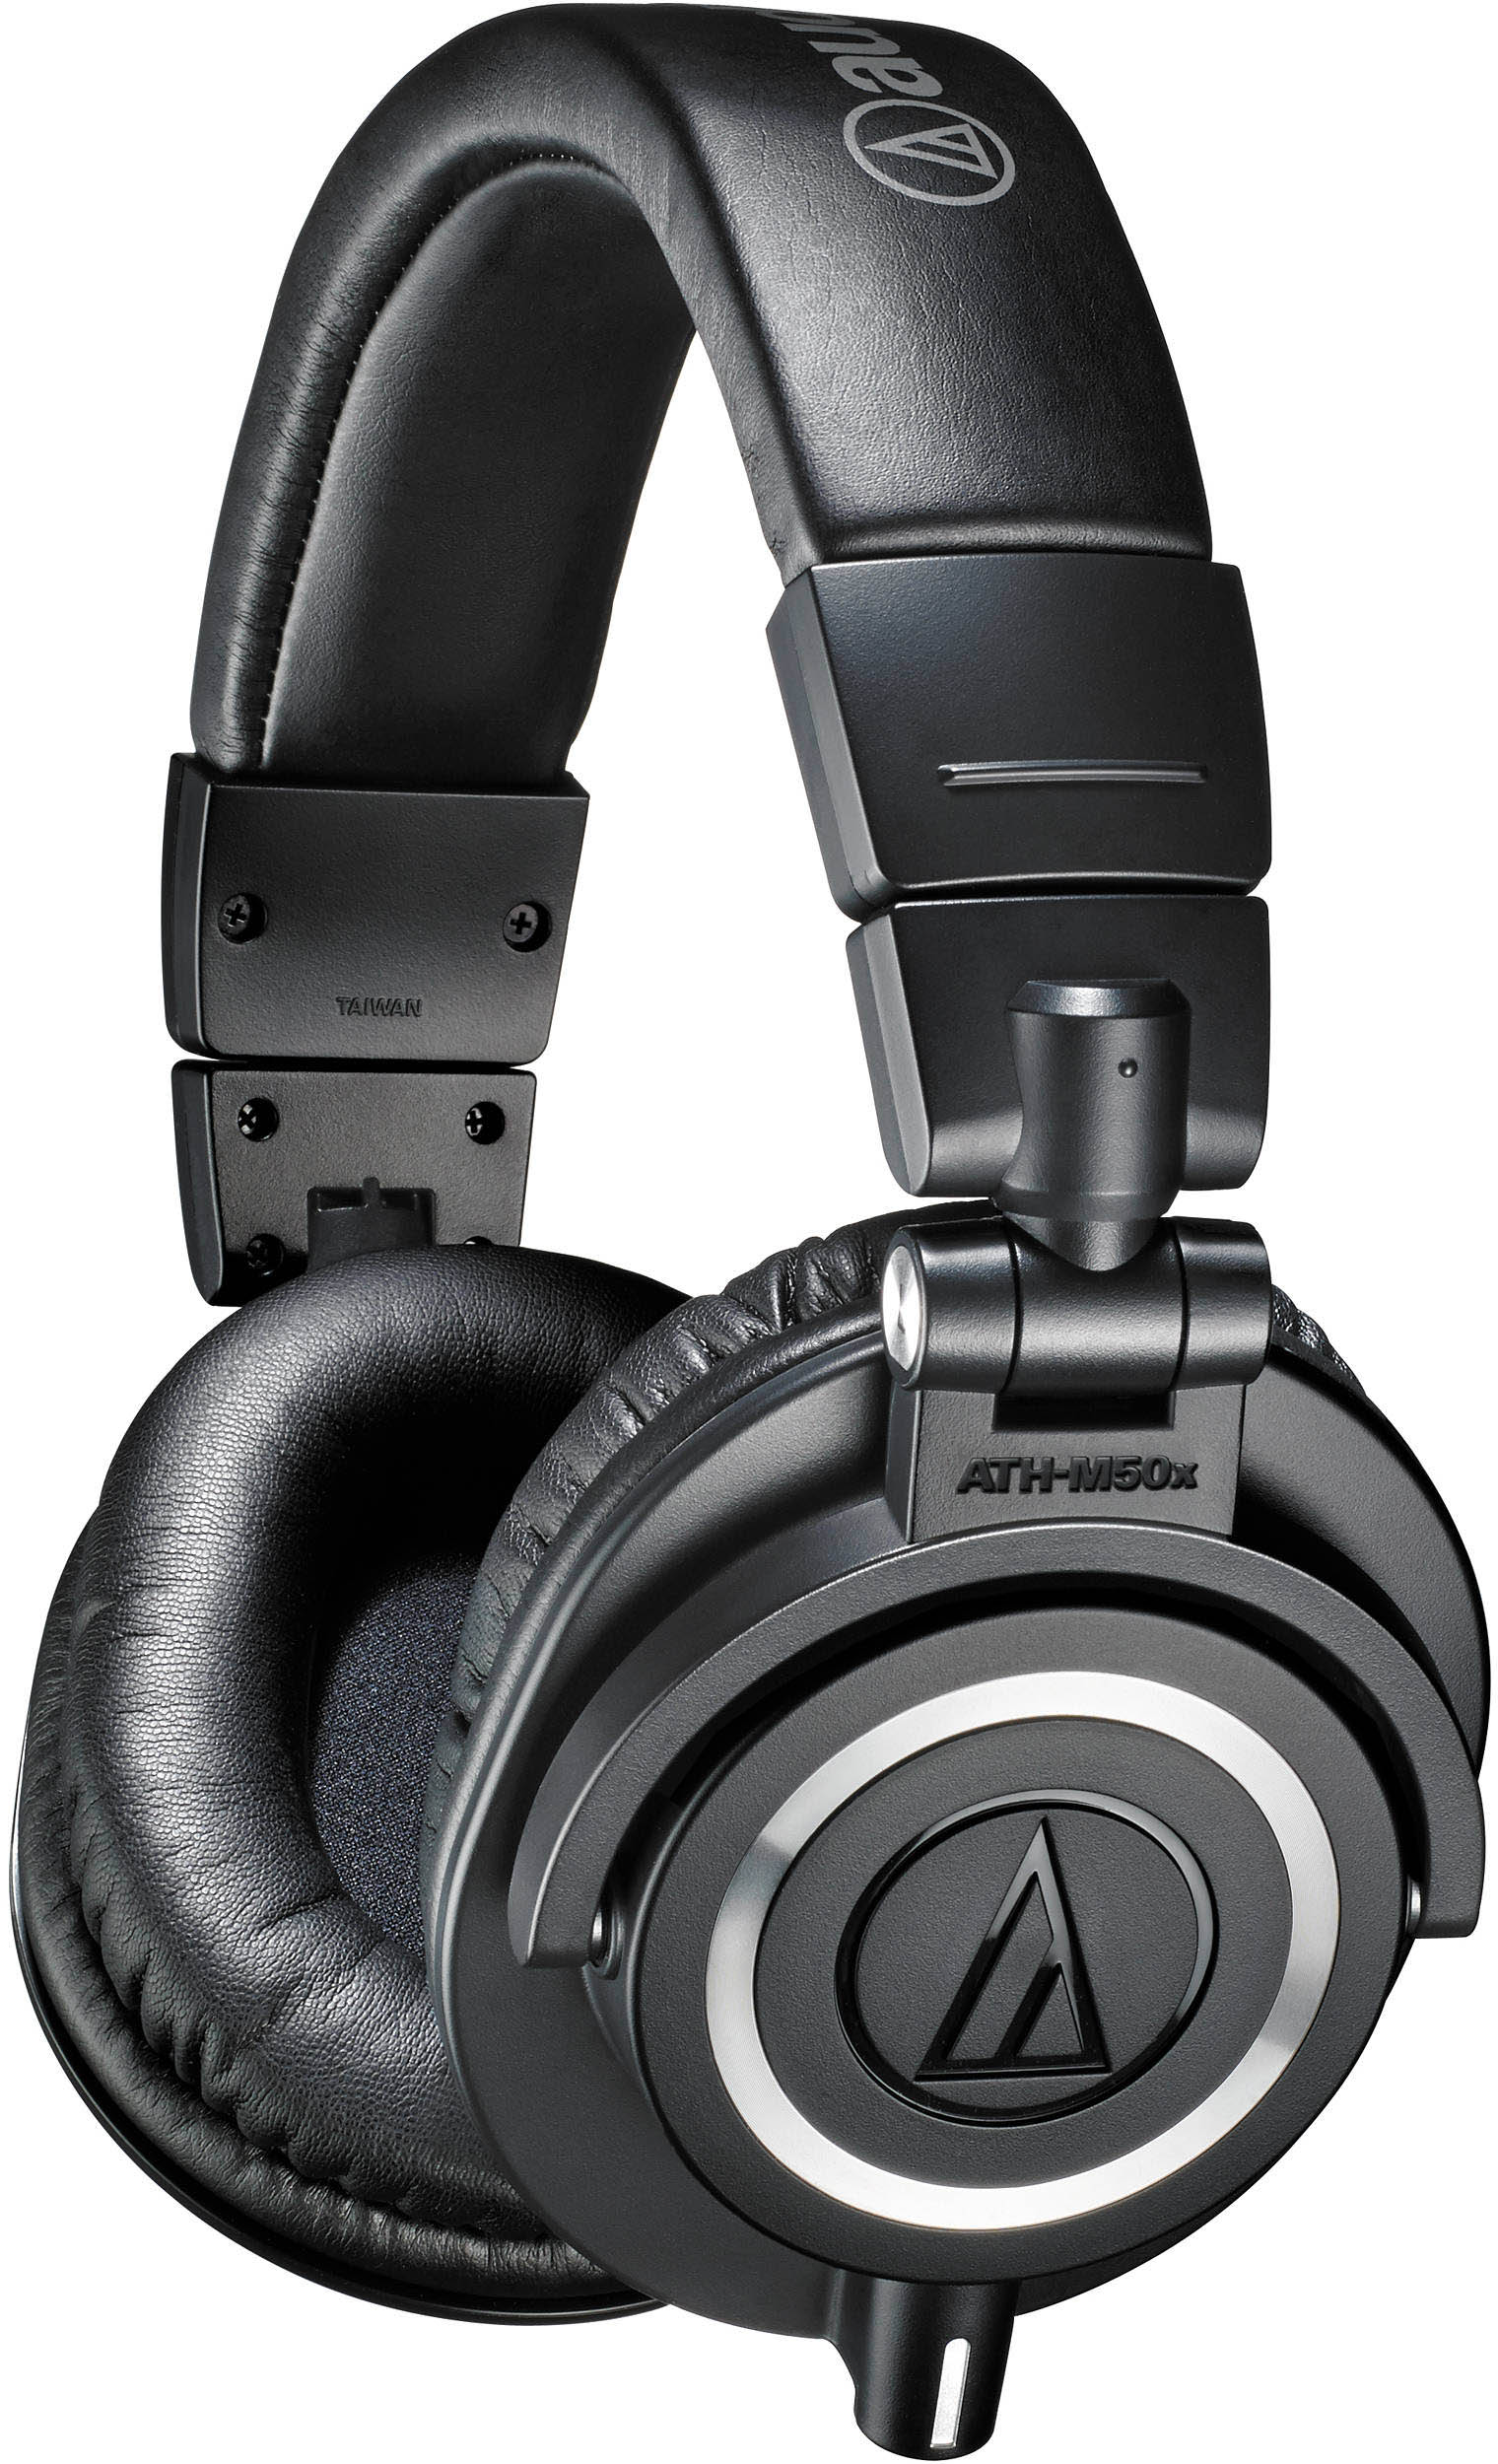 Audio Technica M50x Closed-ear Studio Headphones